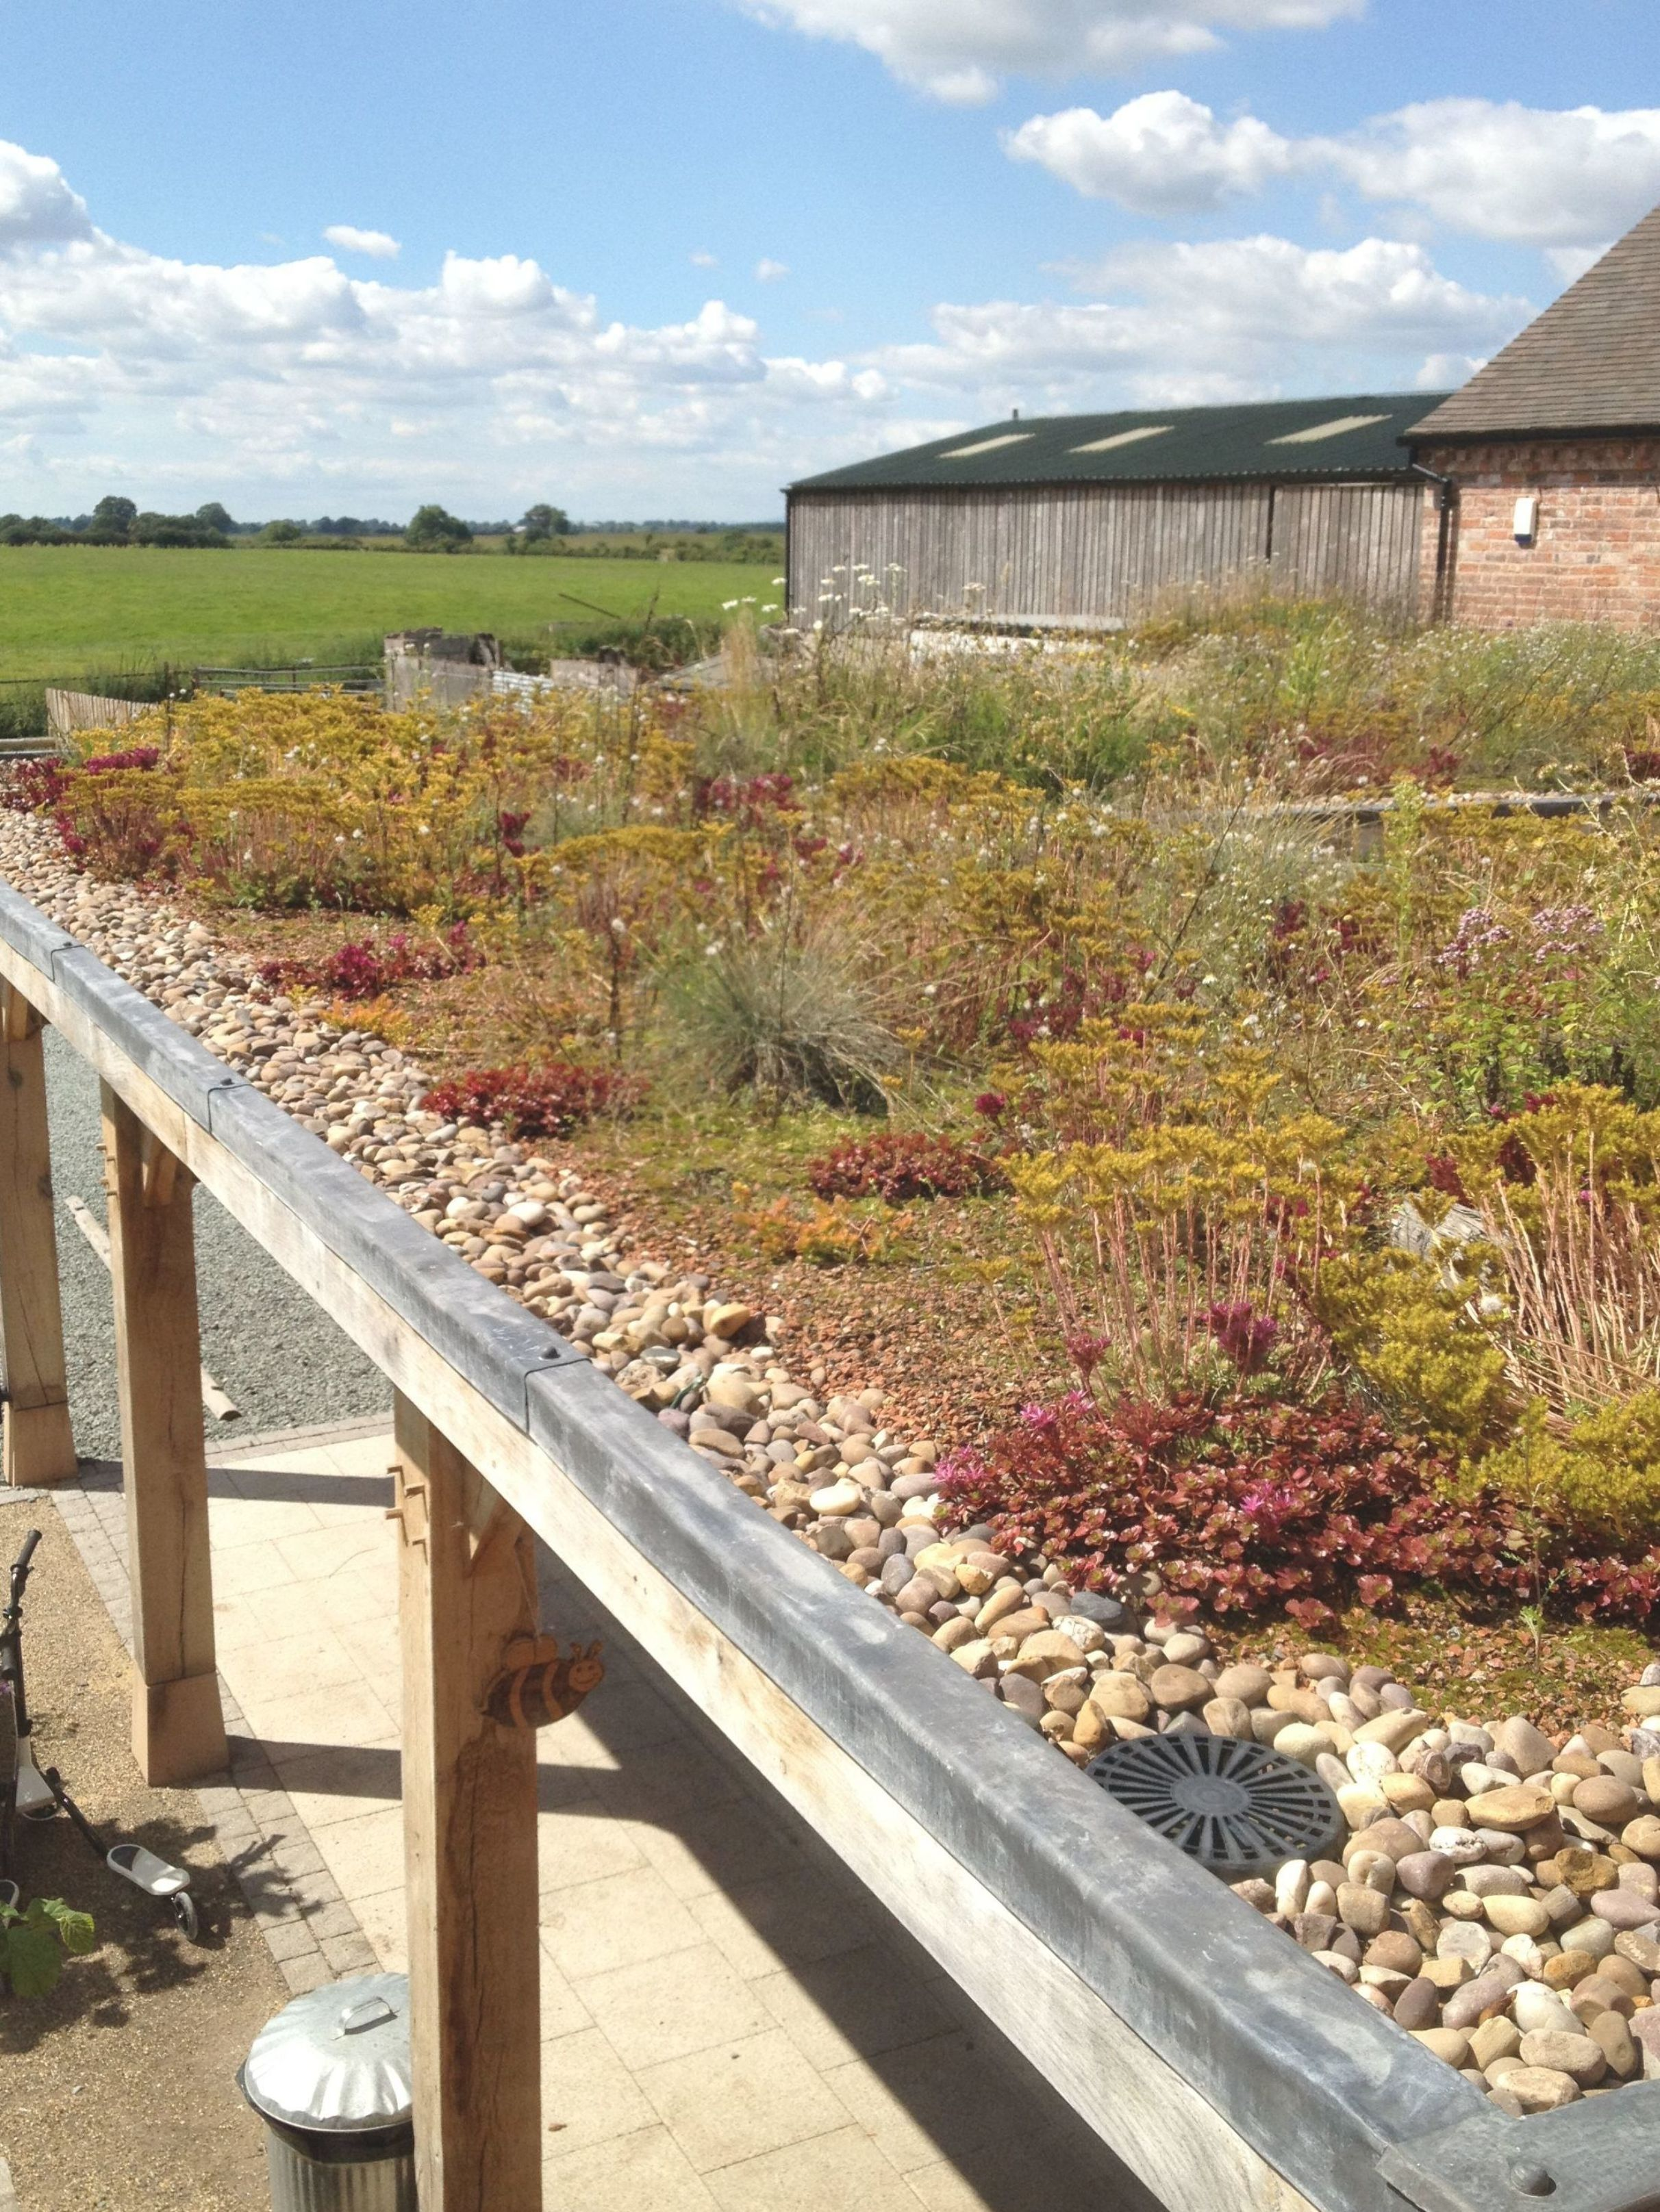 Wildflower Green Roof System Installed By Sedum Supply At Fordhall Organic Farm In Market Drayton Shropshire Greenr In 2020 Green Roof Garden Green Roof Roof Garden